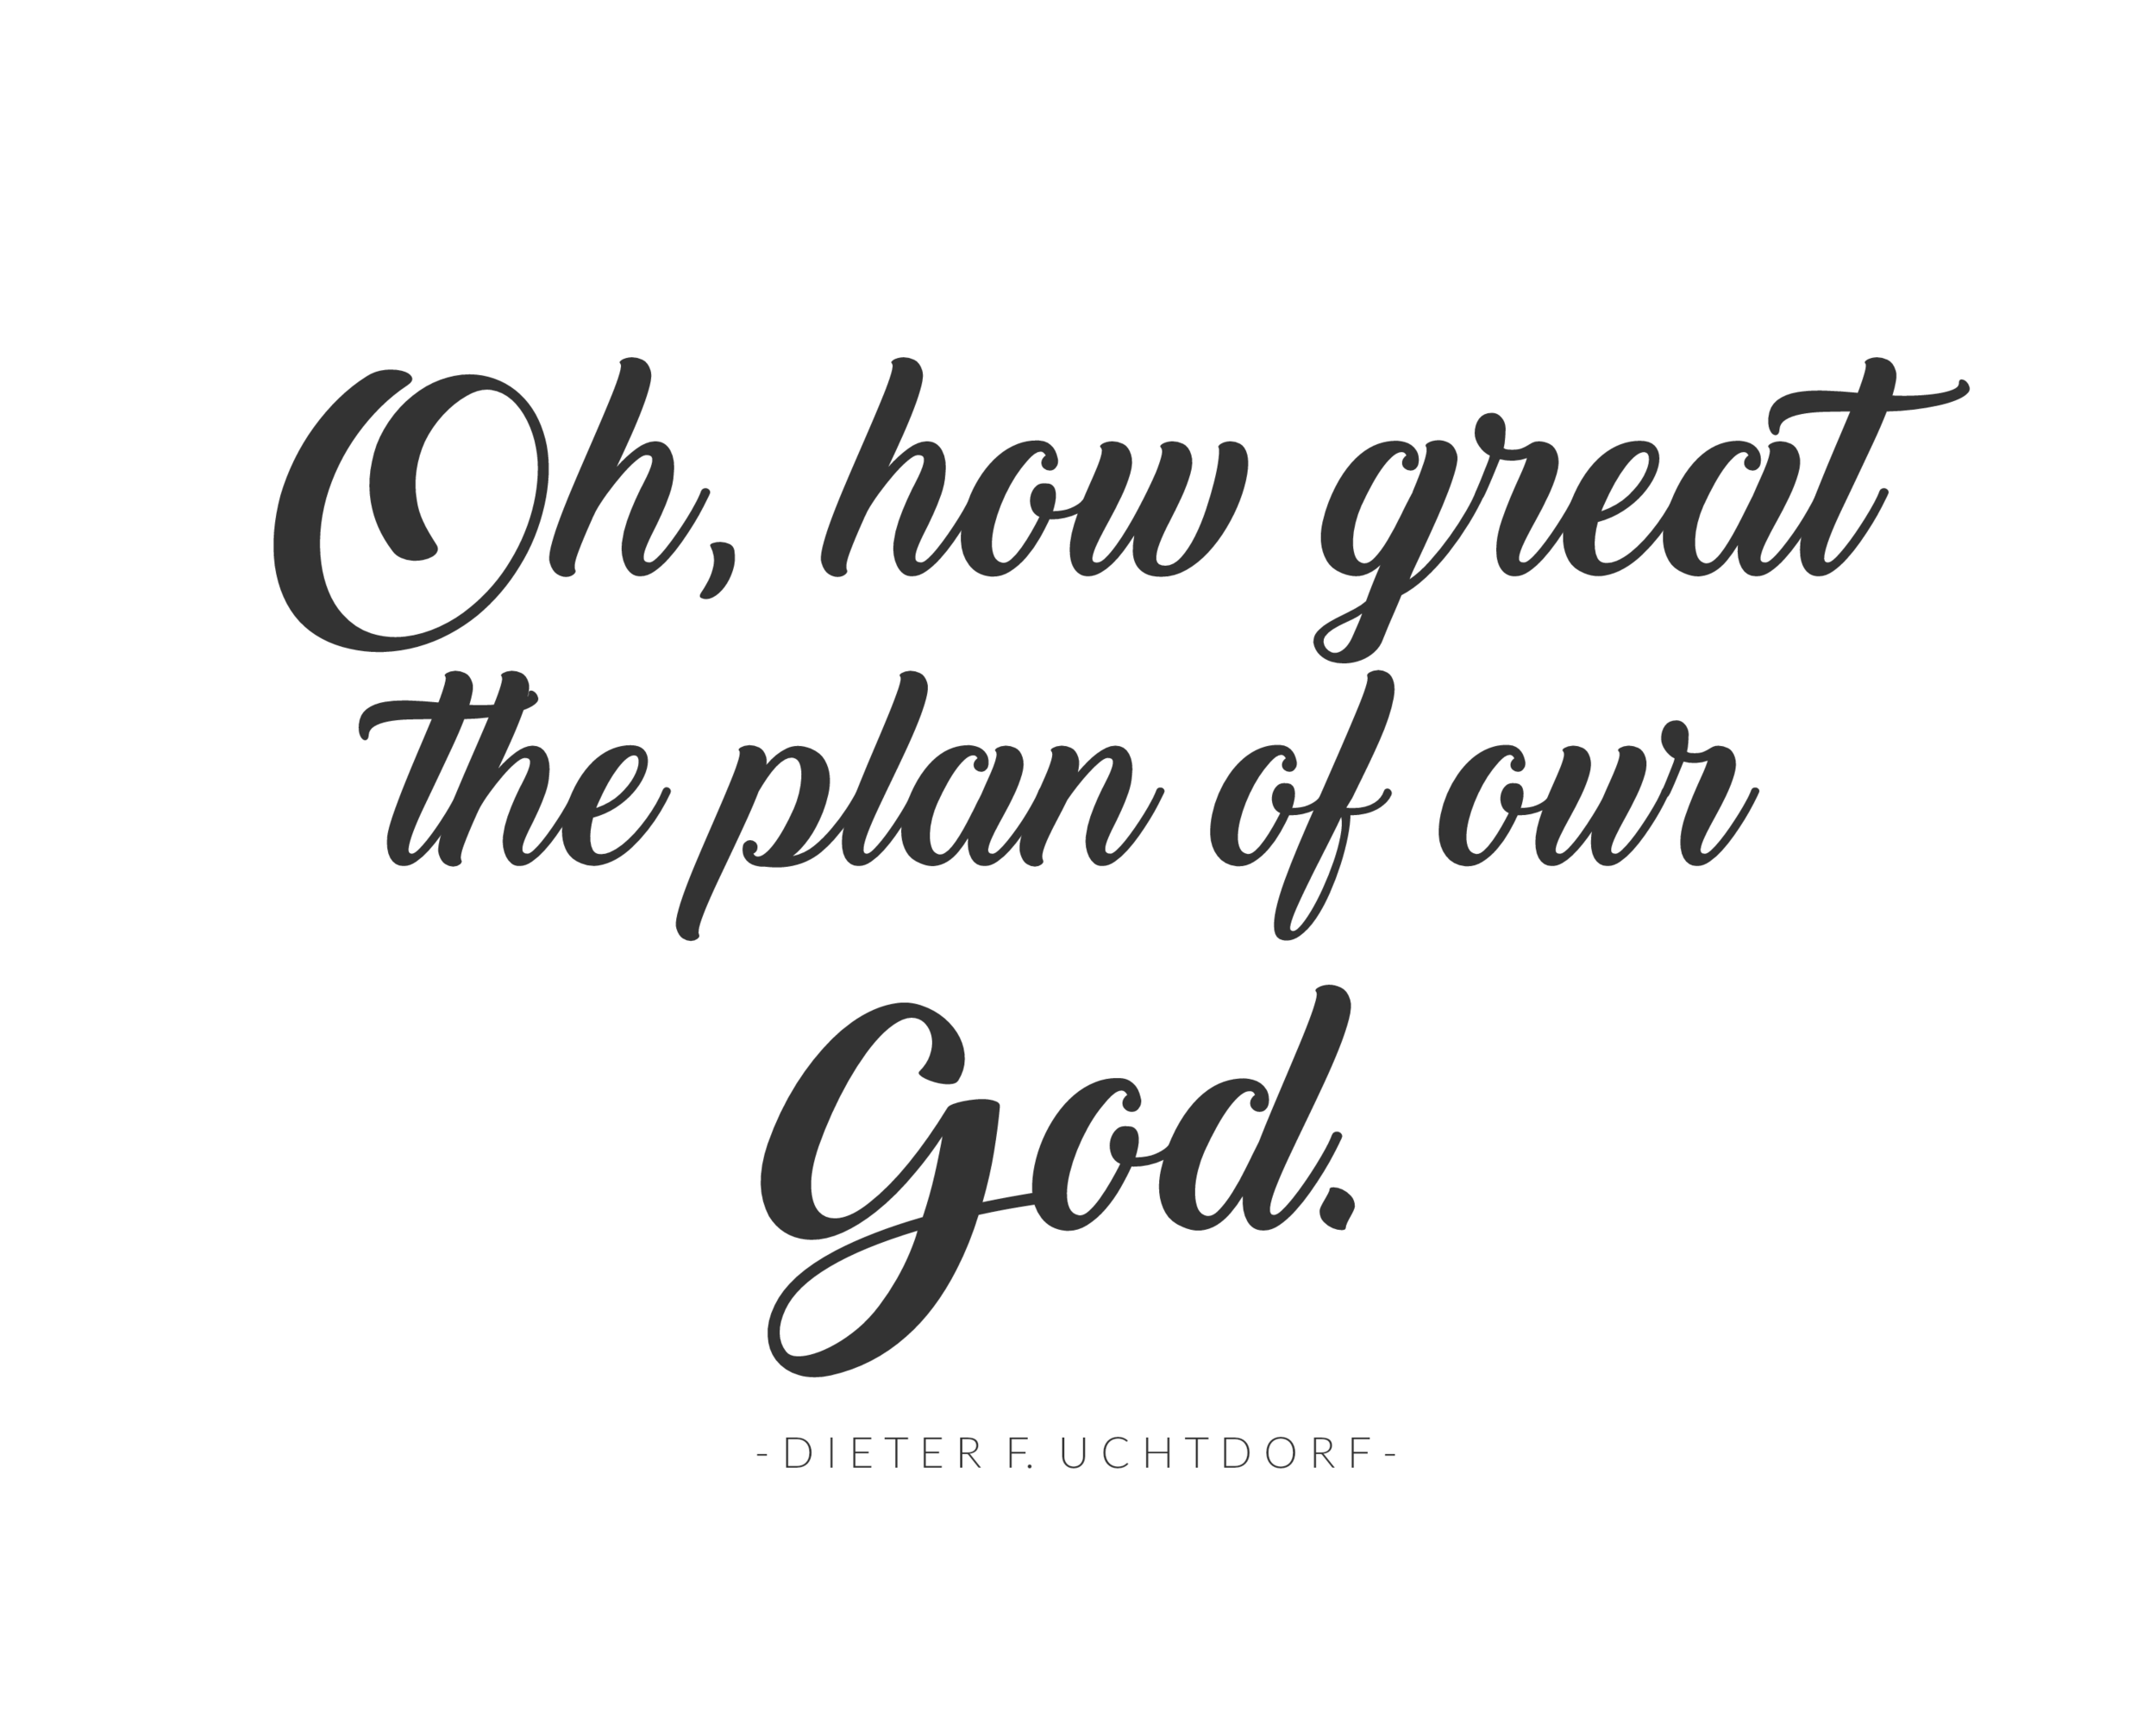 """Oh, how great the plan of our God."" Dieter F. Uchtdorf 